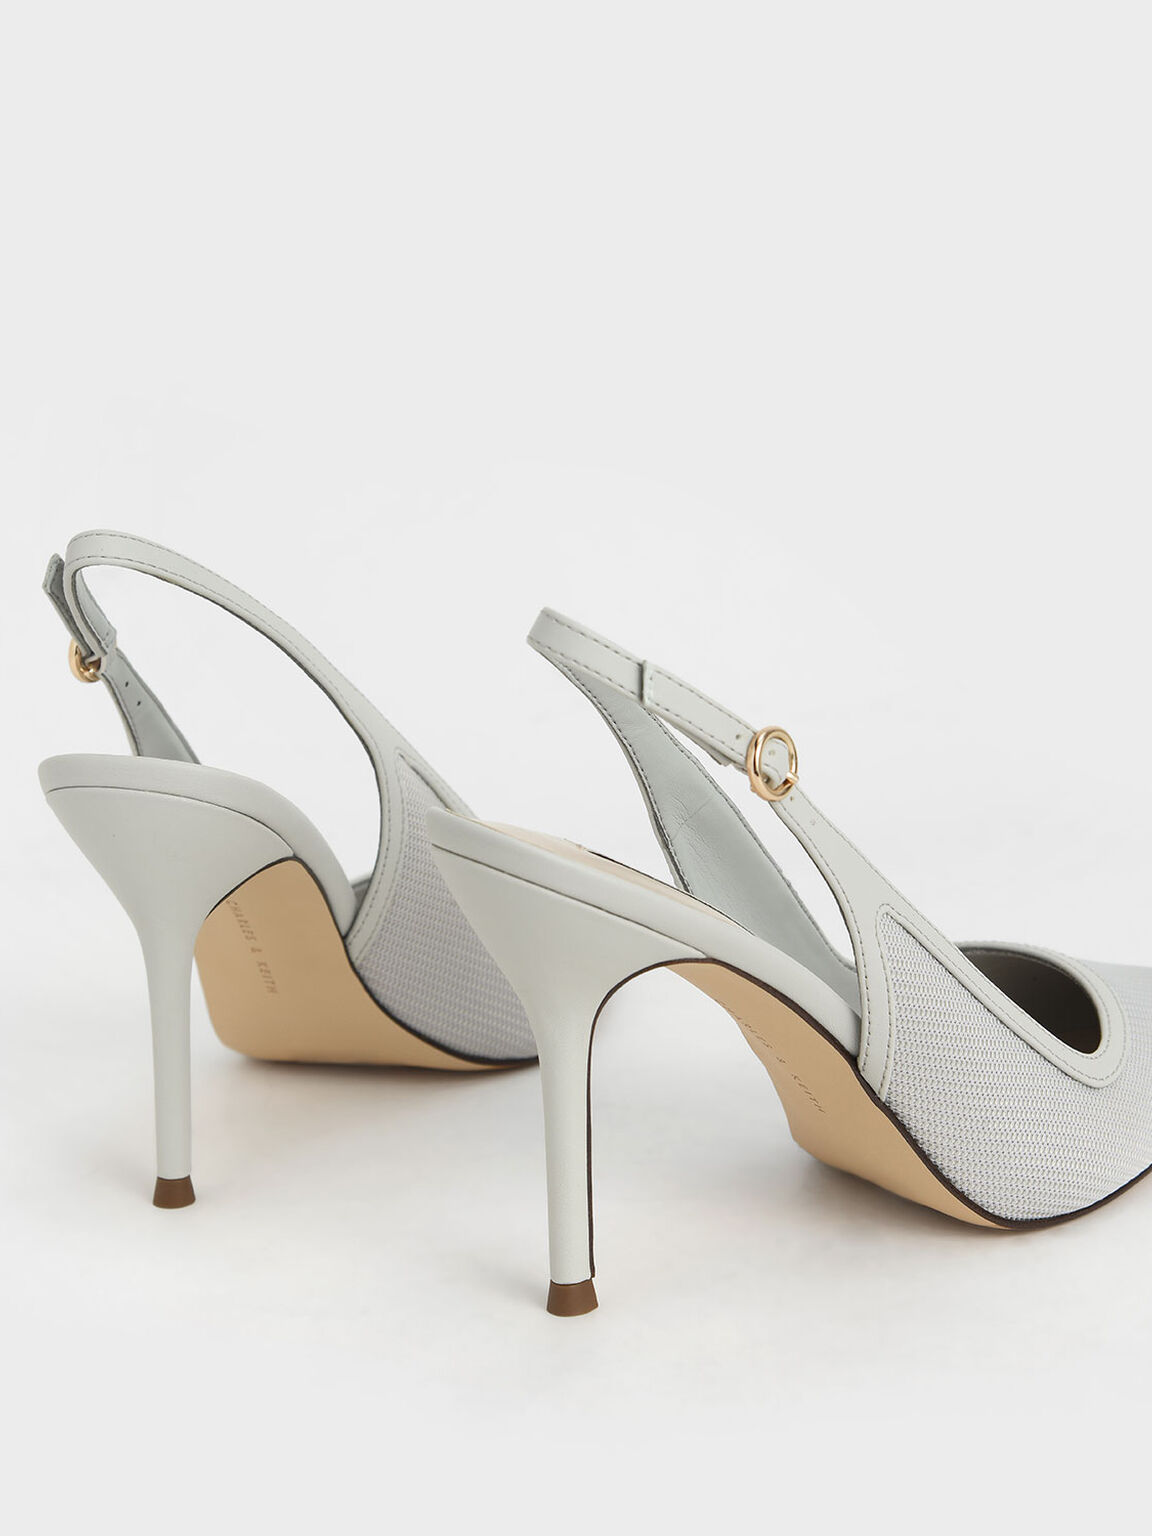 Mesh & Satin Slingback Stiletto Pumps, Light Grey, hi-res